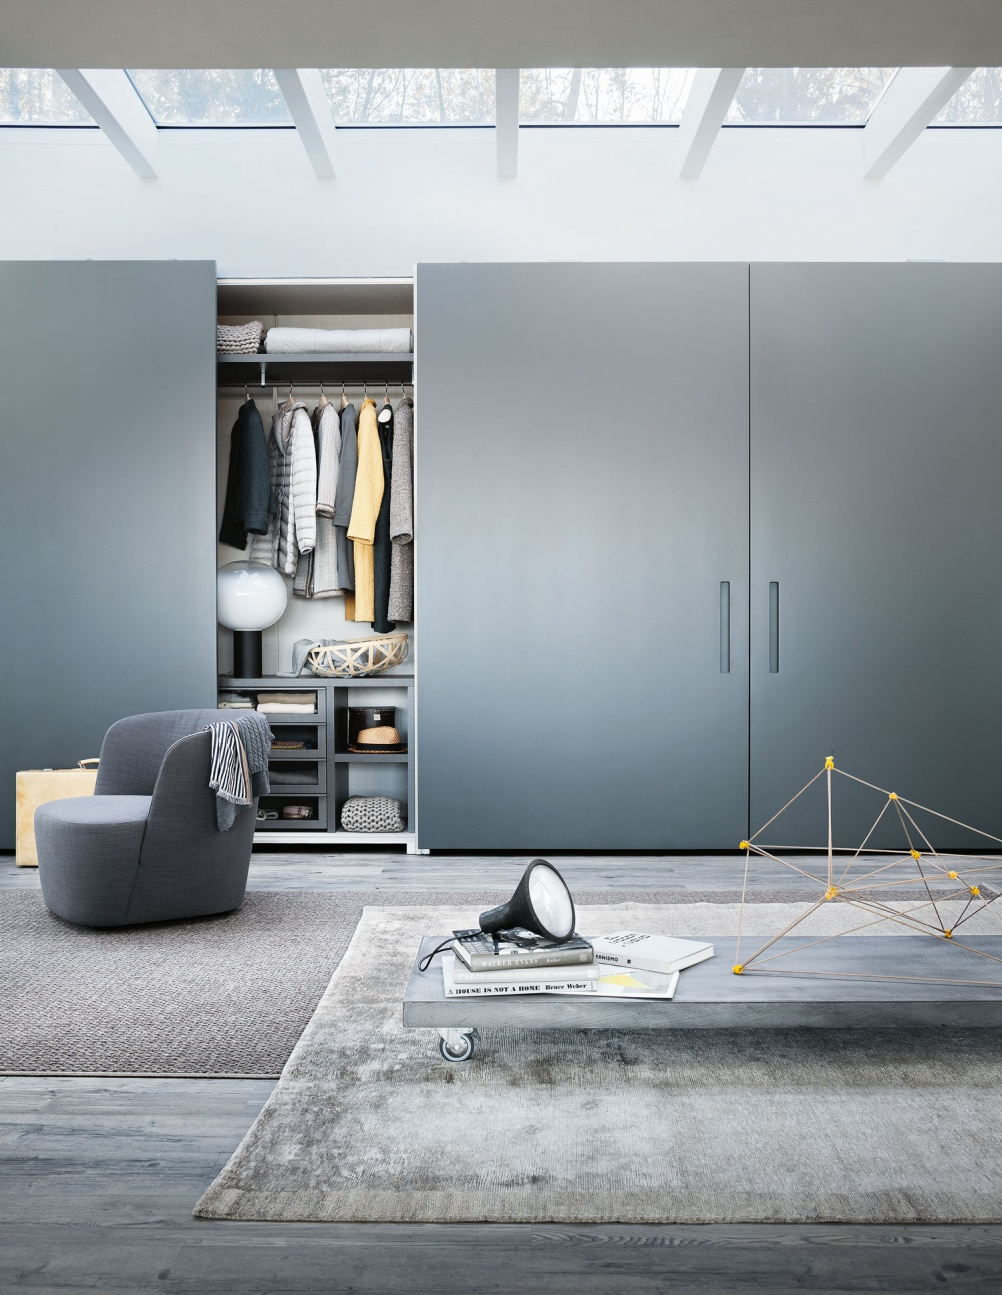 Italian Furniture Brand Lema To Open Flagship Store In